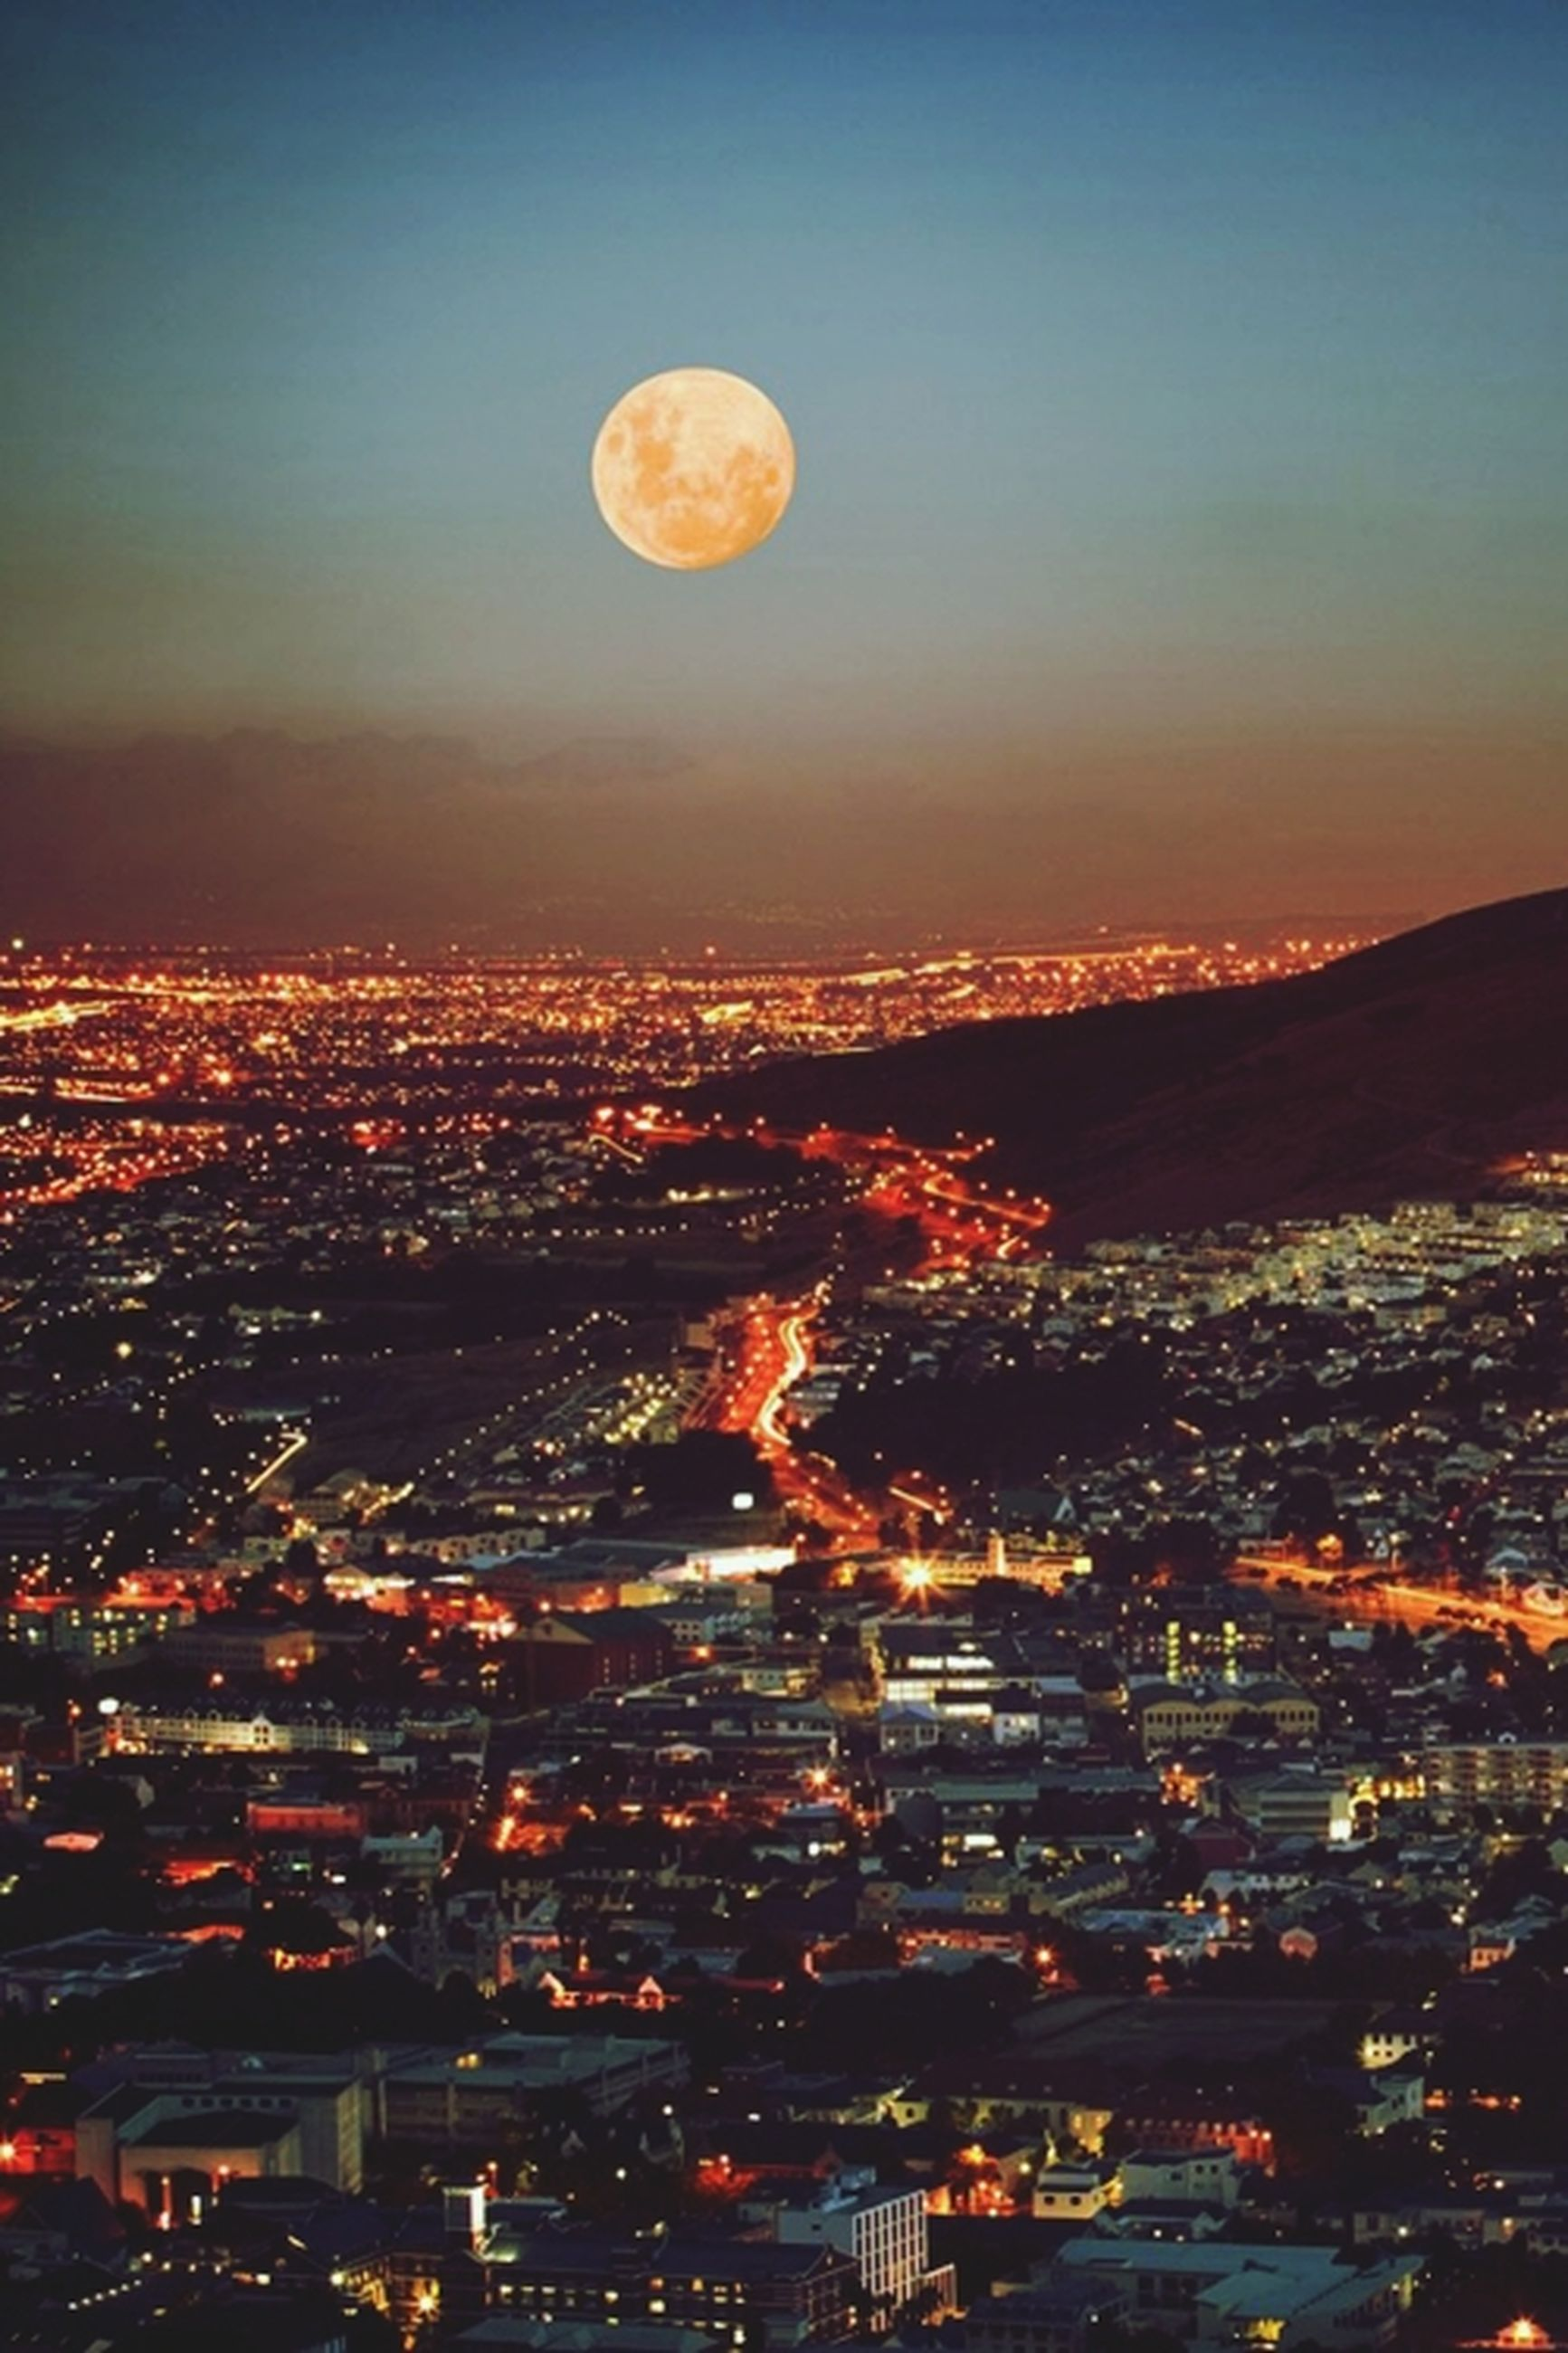 illuminated, cityscape, night, city, building exterior, aerial view, sky, architecture, built structure, moon, clear sky, crowded, scenics, residential district, landscape, dusk, copy space, outdoors, mid-air, high angle view